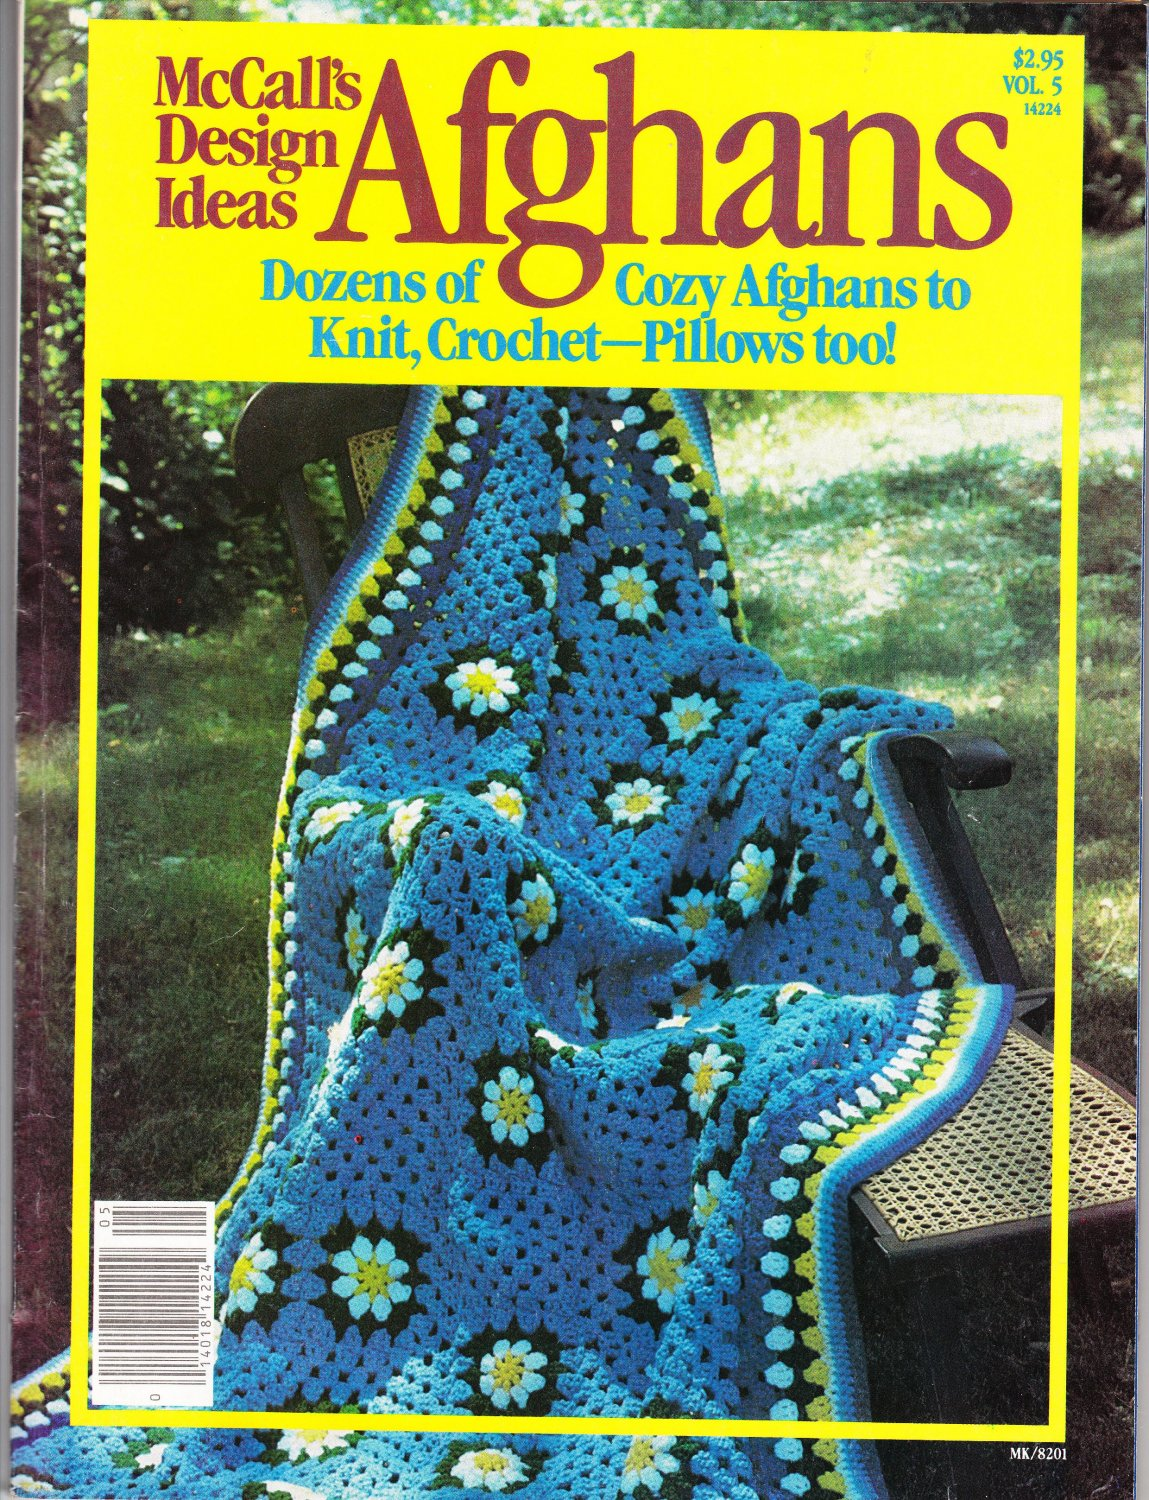 McCall's Design Ideas Vol. 5 Afghans 1982 Magazine Issue Knit Crochet